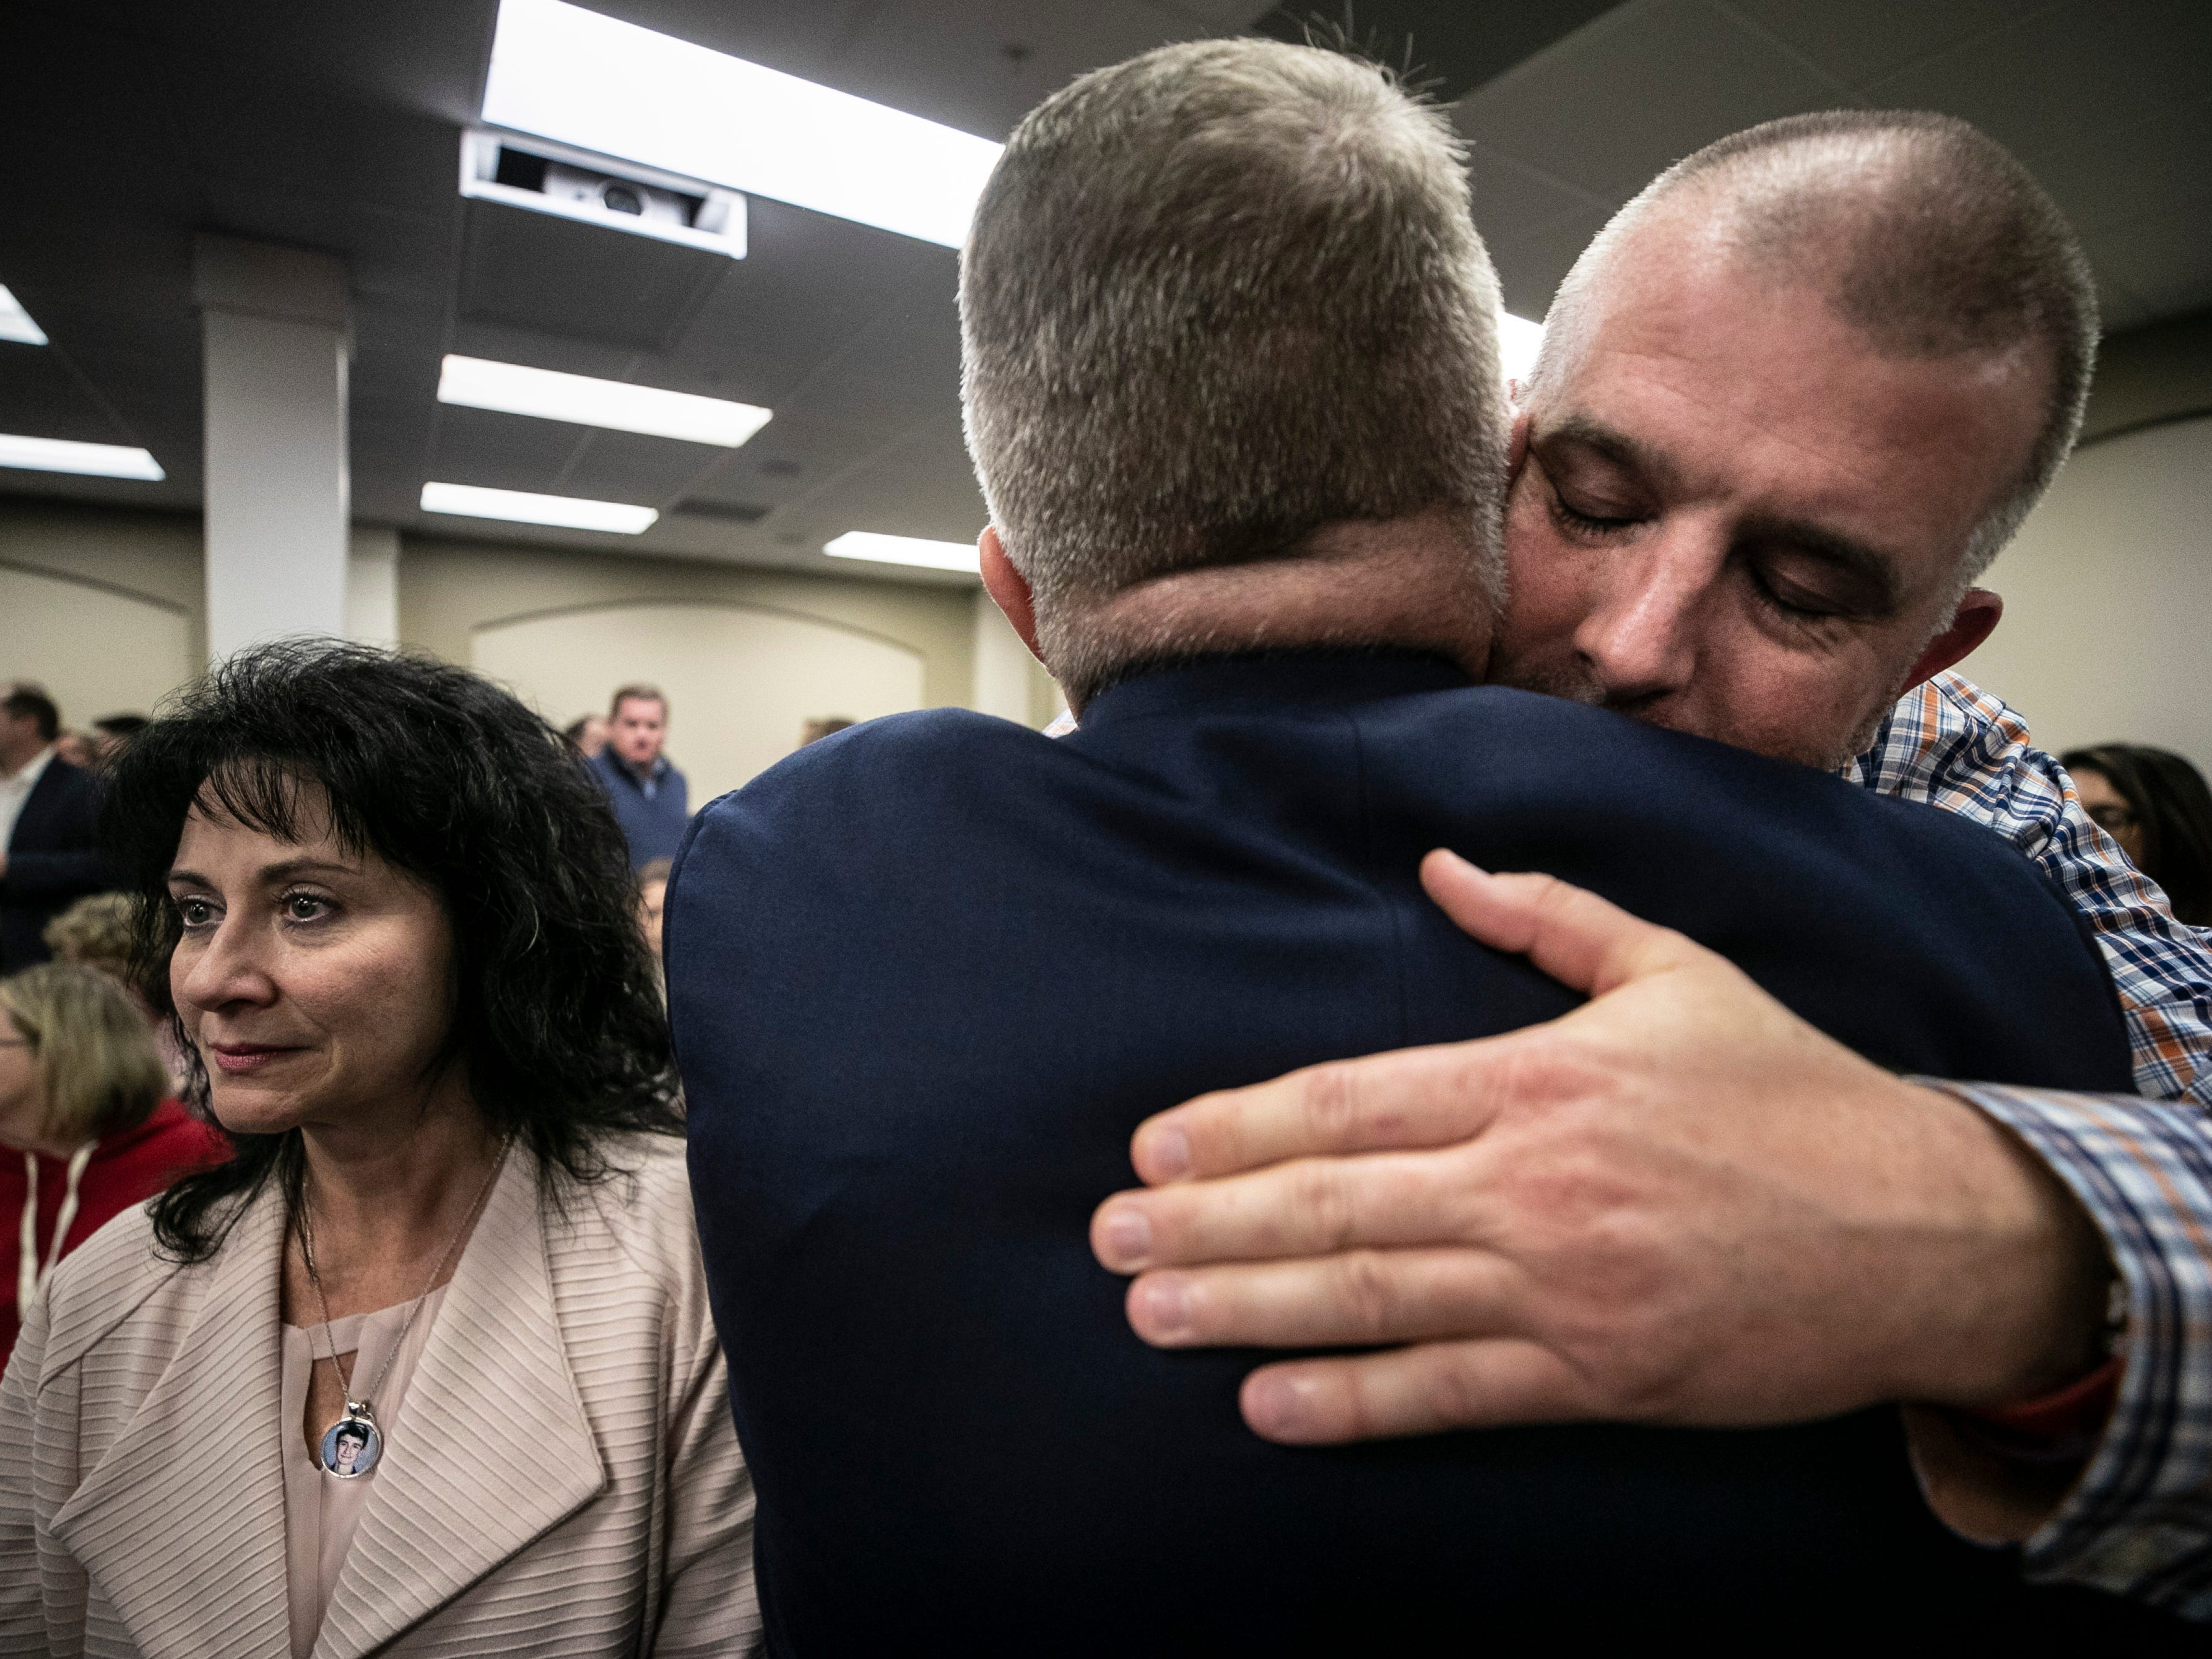 Jasen Holt hugs Kentucky Senator Danny Carroll after a hearing Thursday at the State Capitol. Holt's daughter, 15-year-old Bailey Holt, was one of two teenagers killed in the Marshall County High School shooting in 2018. At left is Theresa Cope, who wore a pendant with a picture of her son Preston, who also died in the shooting.